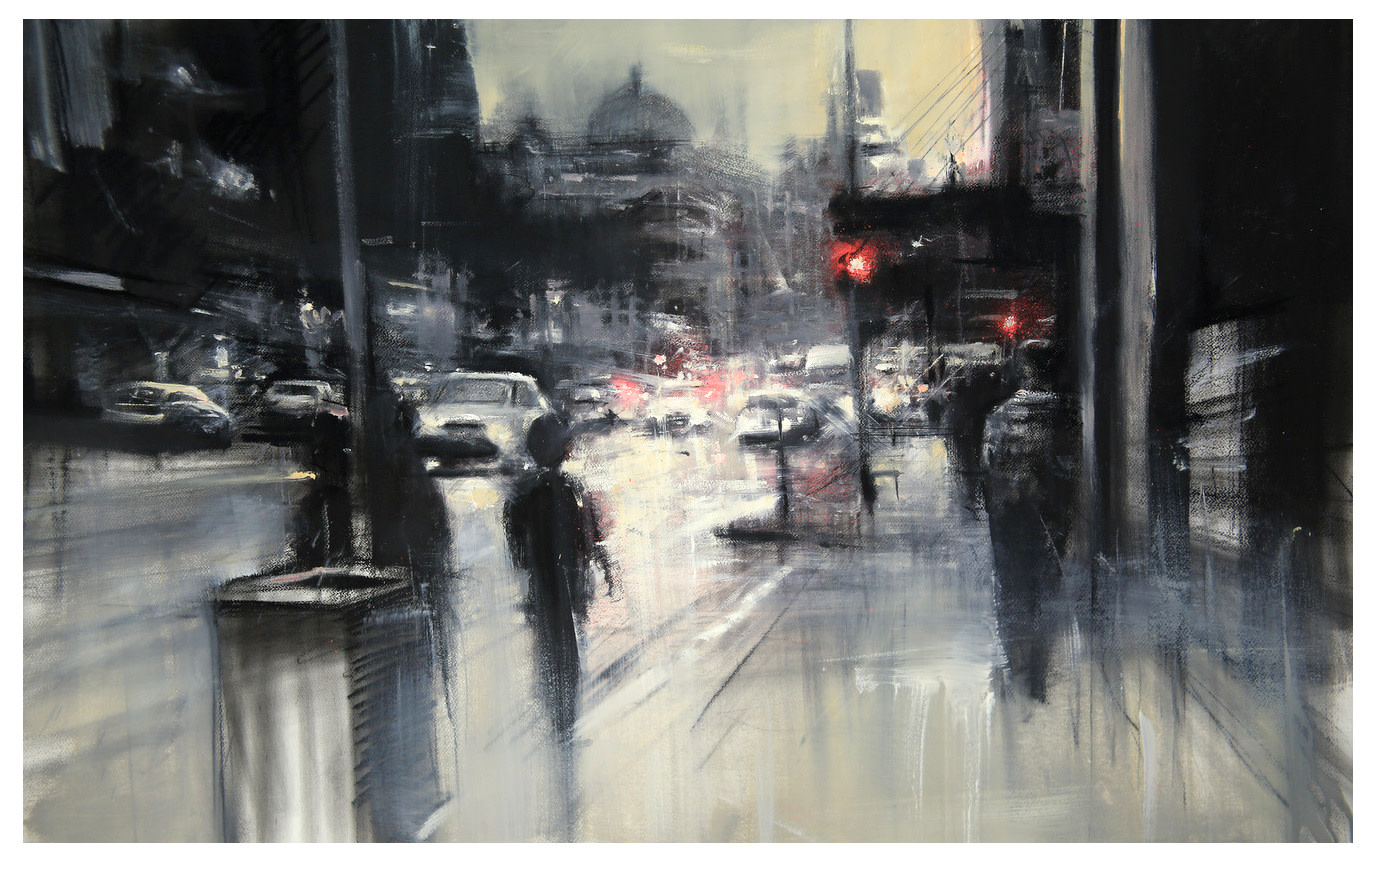 "<span class=""link fancybox-details-link""><a href=""/artists/60-peter-hall/works/7935-peter-hall-waiting-at-the-lights-2019/"">View Detail Page</a></span><div class=""artist""><strong>Peter Hall</strong></div> <div class=""title""><em>Waiting at the Lights</em>, 2019</div> <div class=""medium"">Mixedd media on paper</div> <div class=""dimensions"">90x150cm</div>"